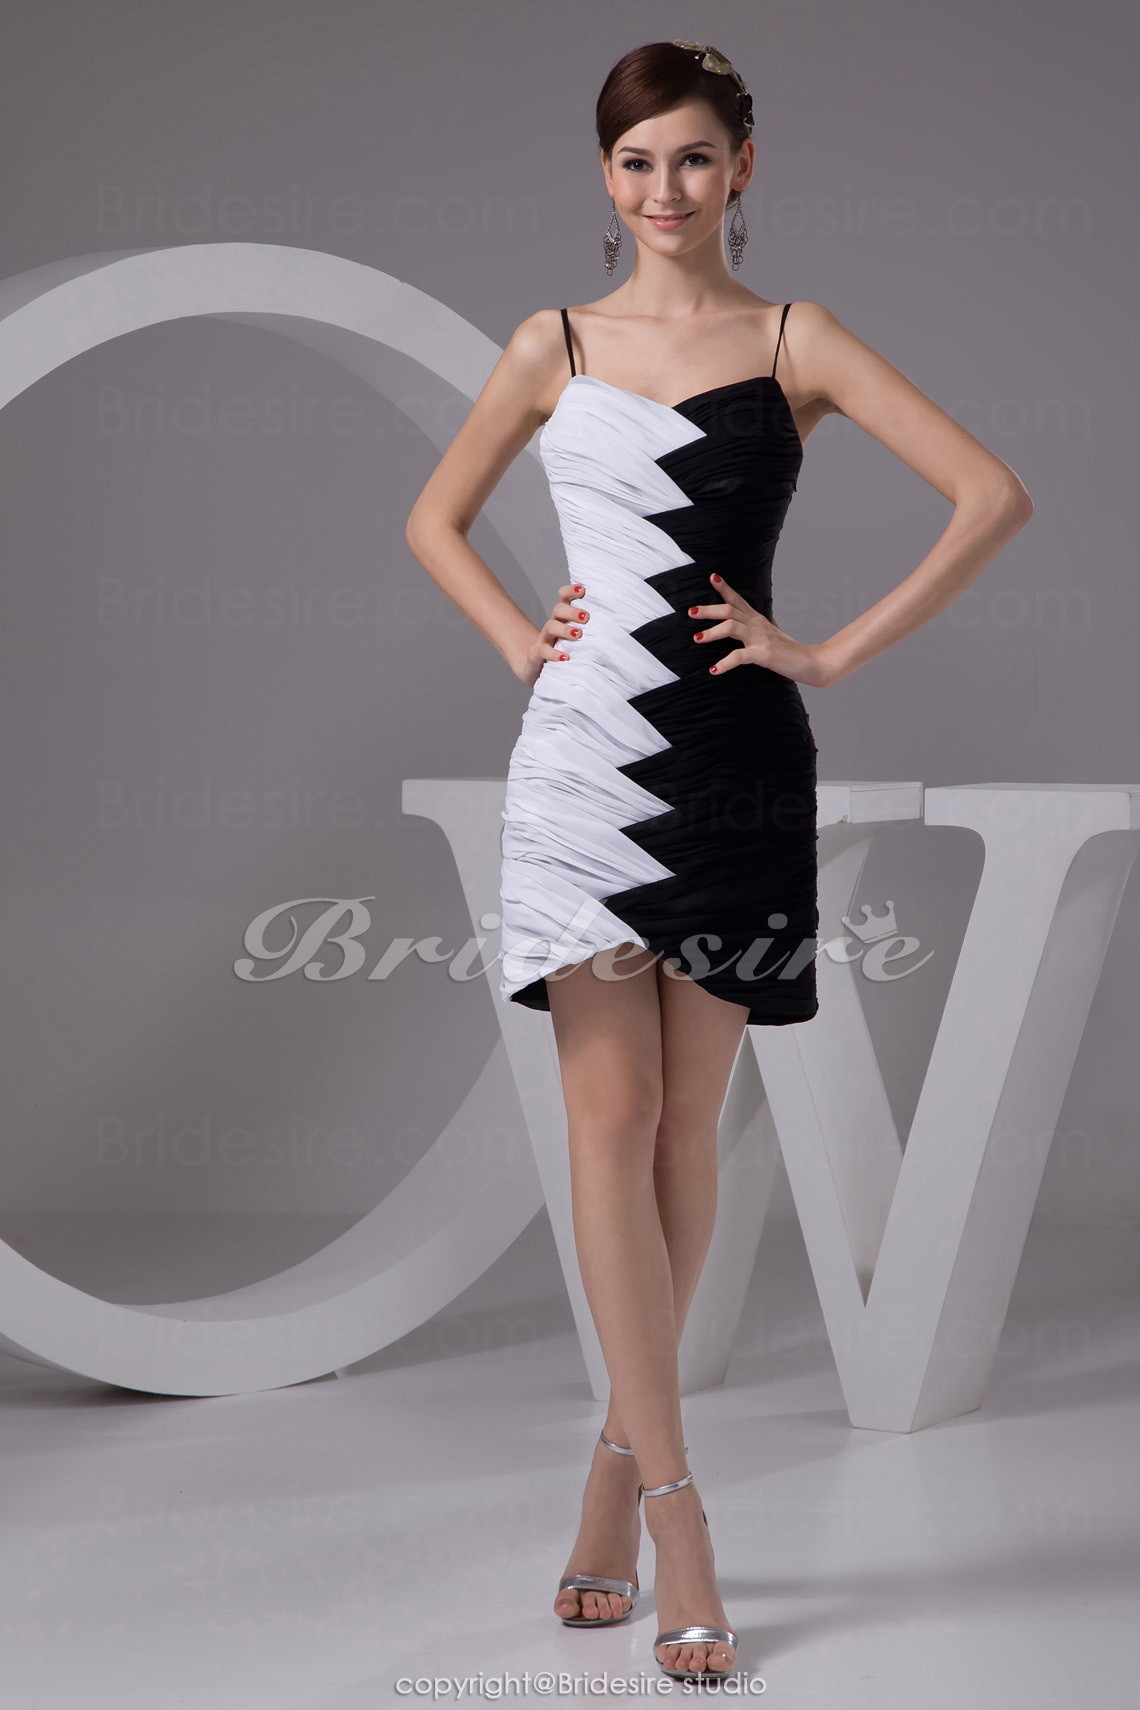 Sheath/Column Sweetheart Spaghetti Straps Short/Mini Sleeveless